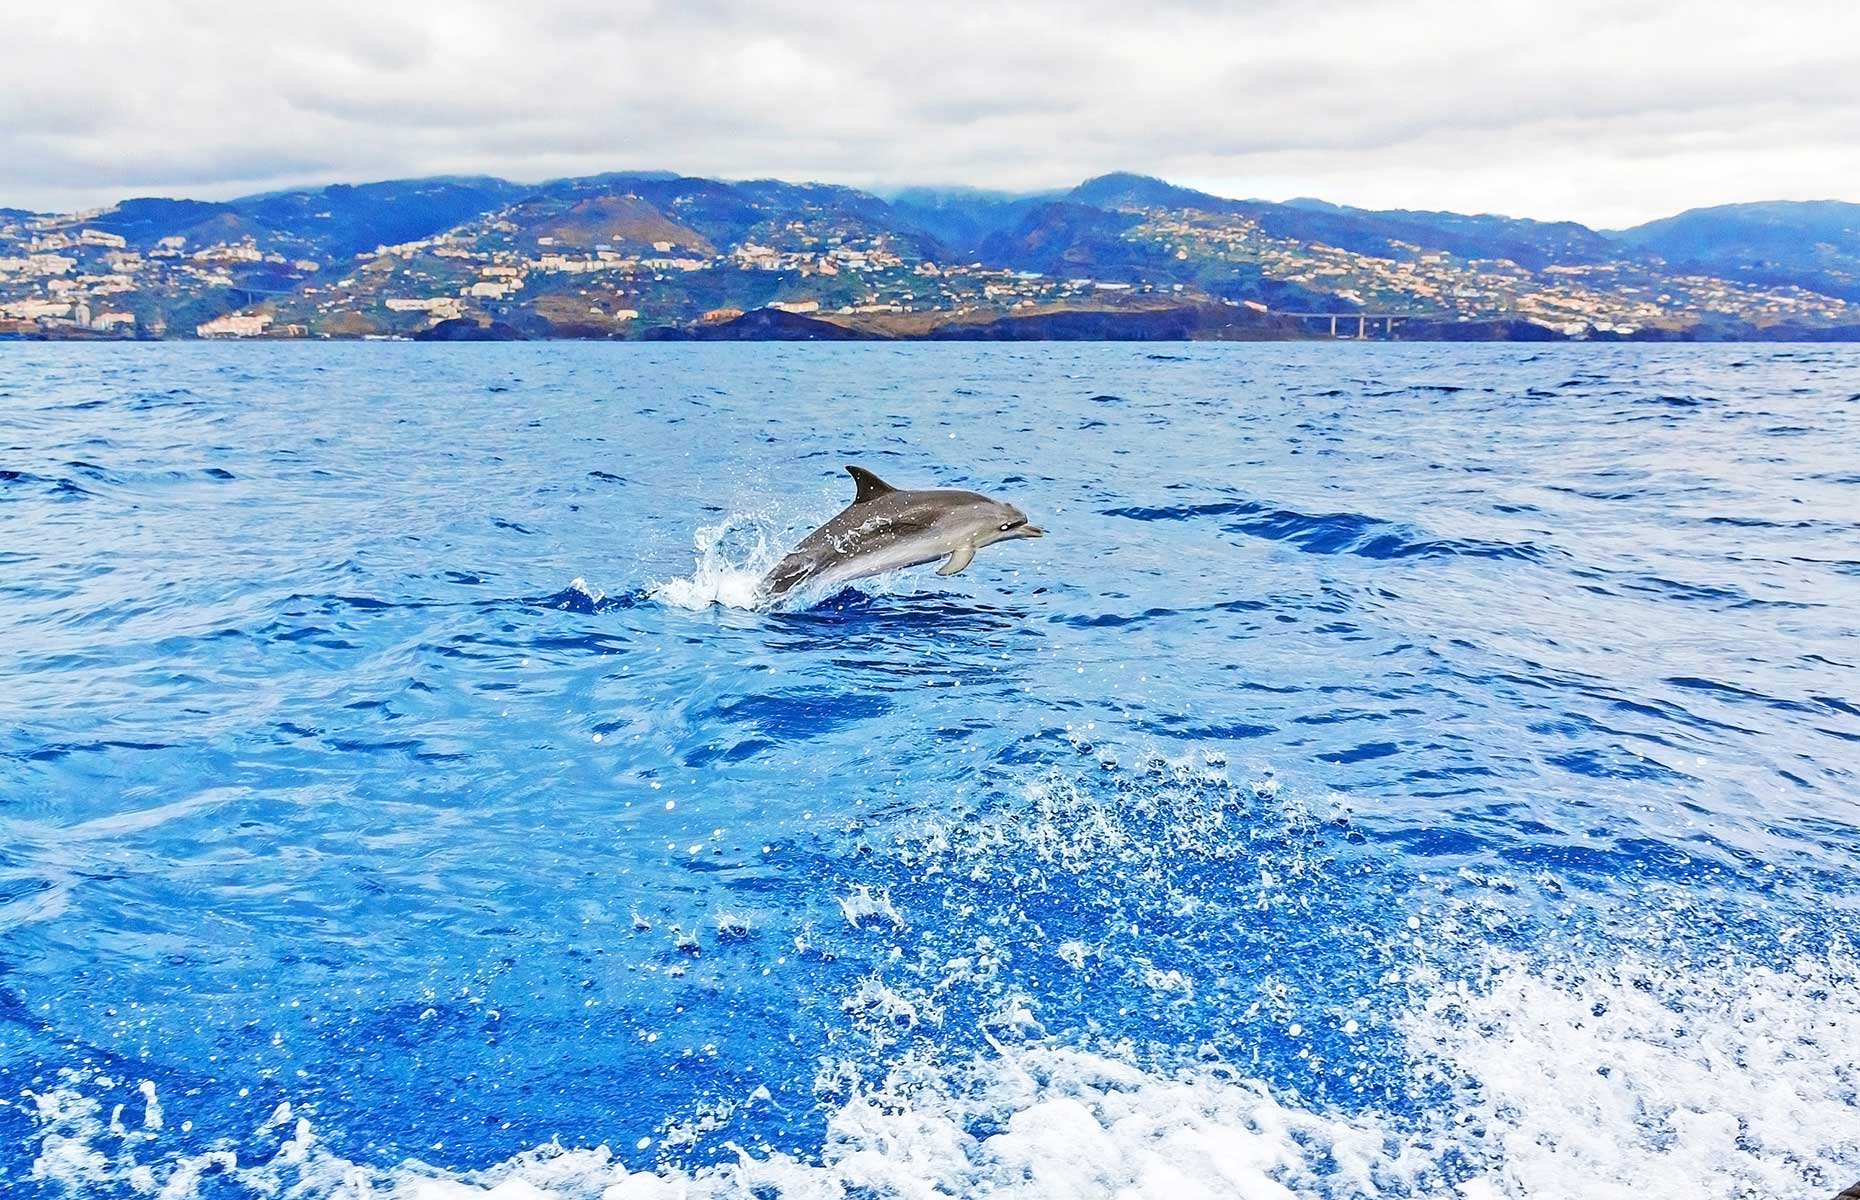 Dolphin off the coast of Madeira, Portugal (Image: aldorado/Shutterstock)